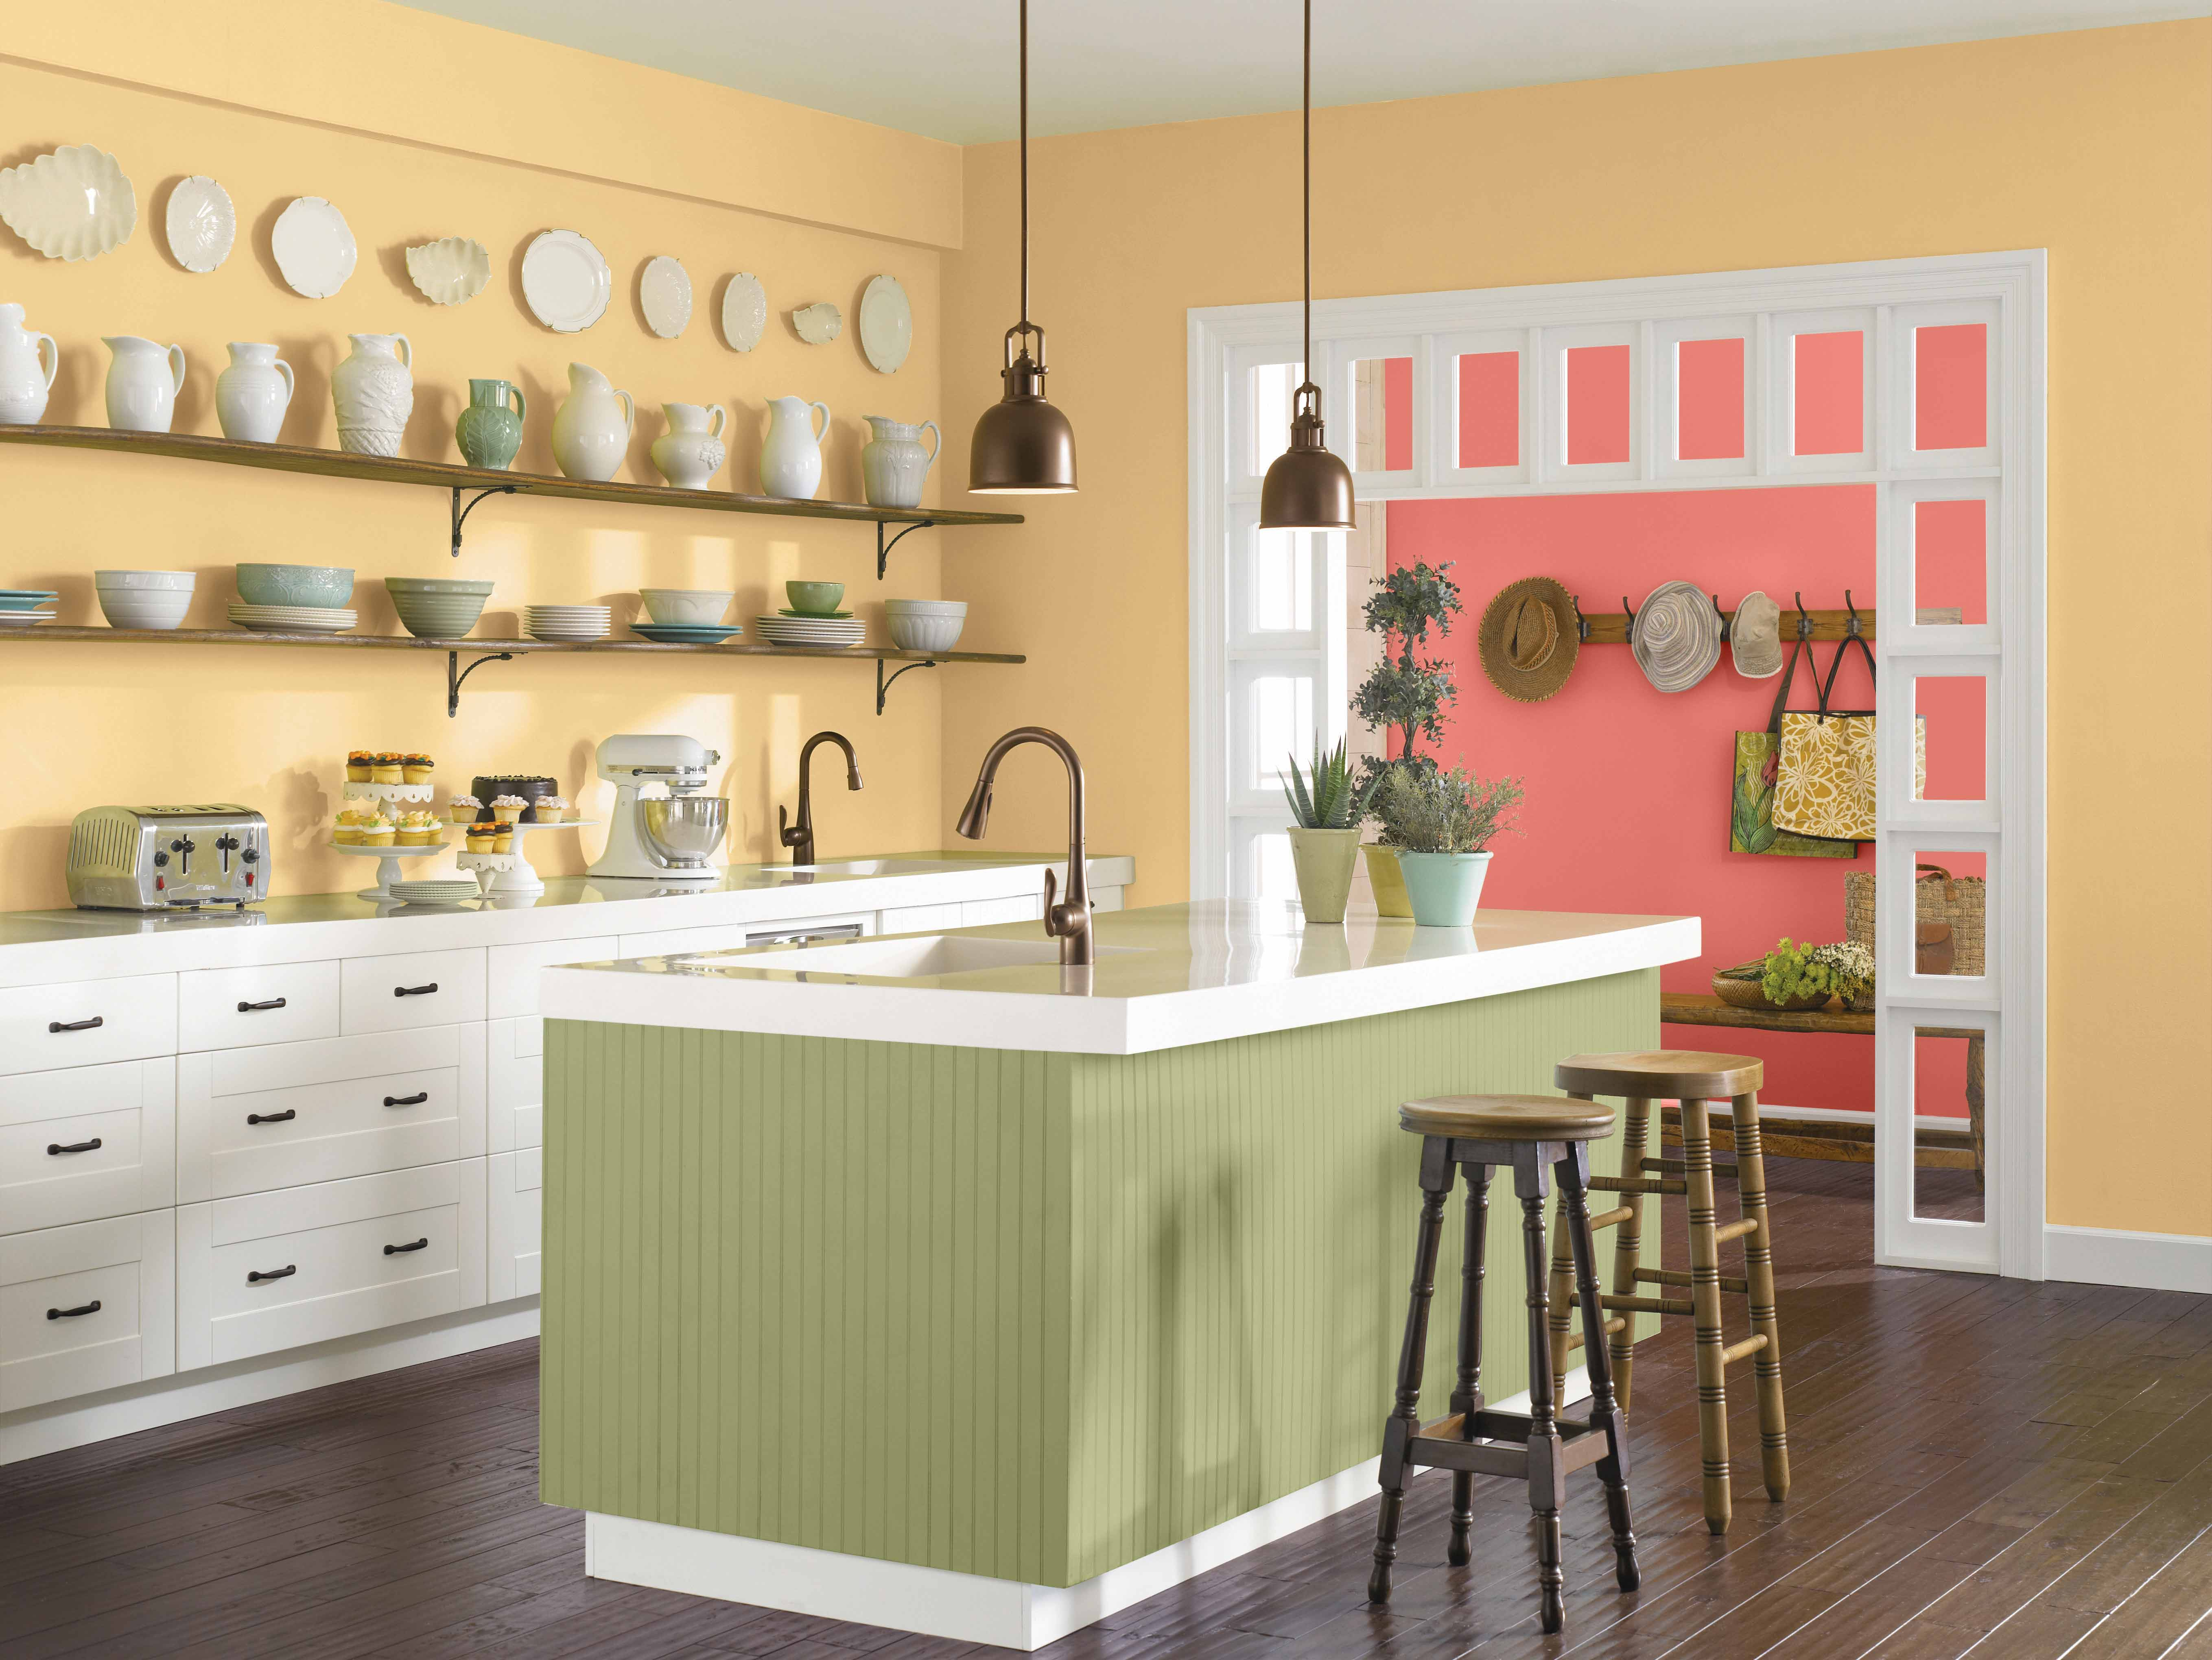 Awesome CR_COTY Kitchen_Hubbard Sqaush SW 0044 Coral Reef 6606 Awesome Design